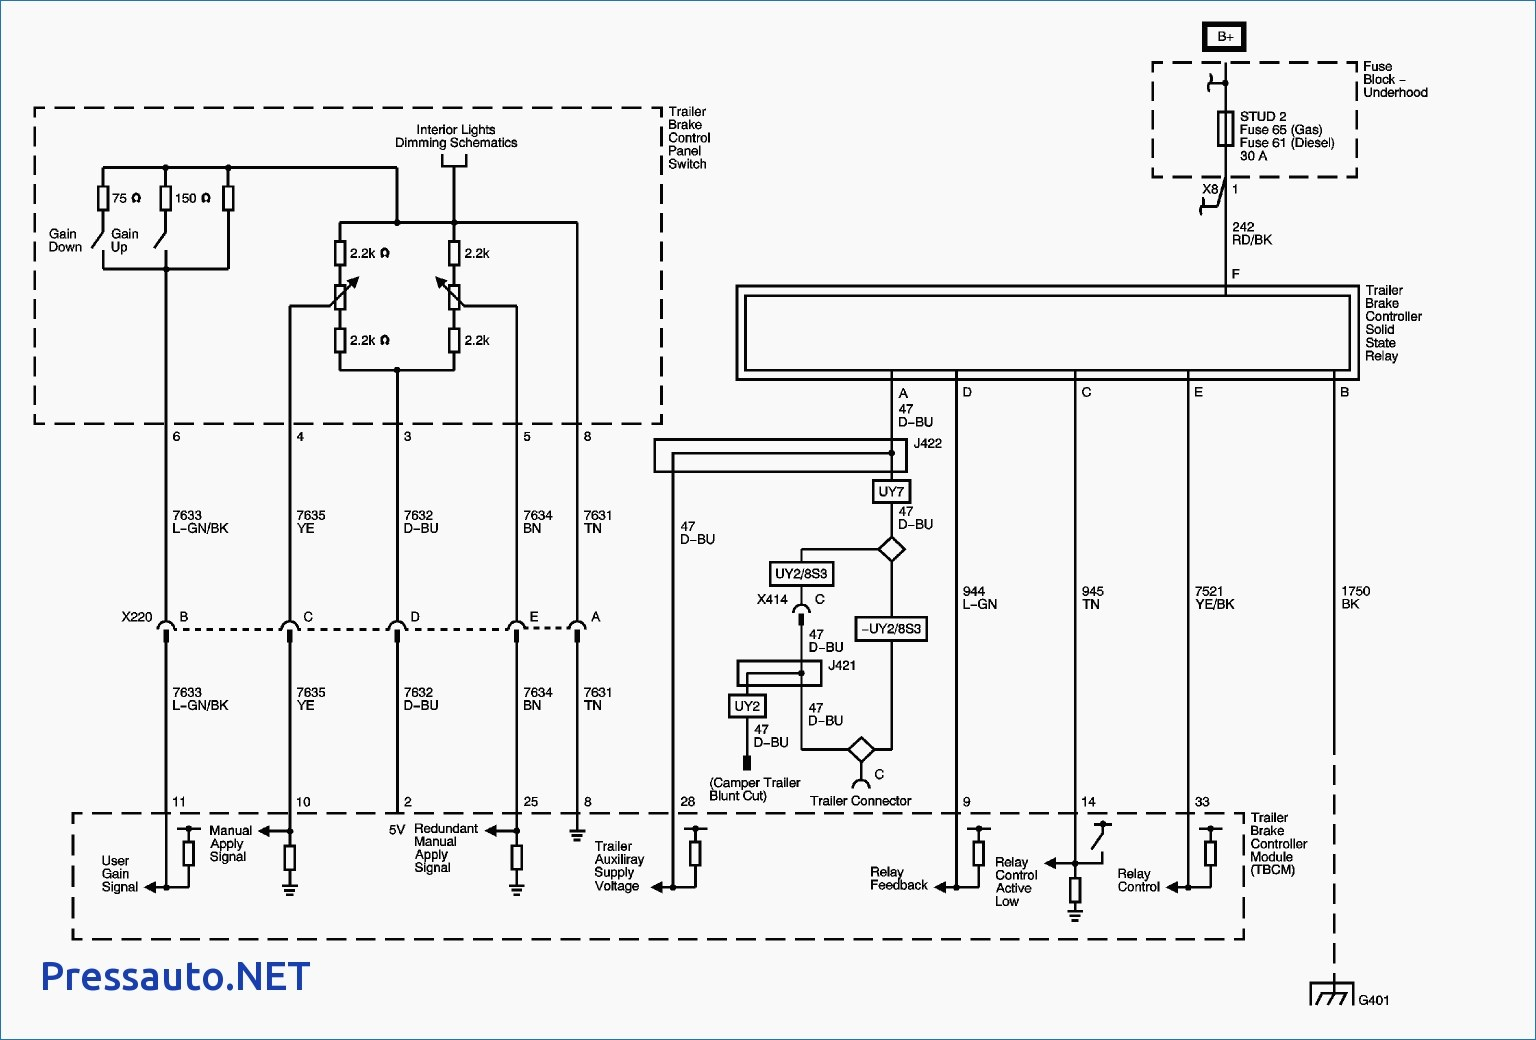 Chevy Express Trailer Wiring Diagram - Chevy Express Trailer Wiring Diagram  Download Free 5j